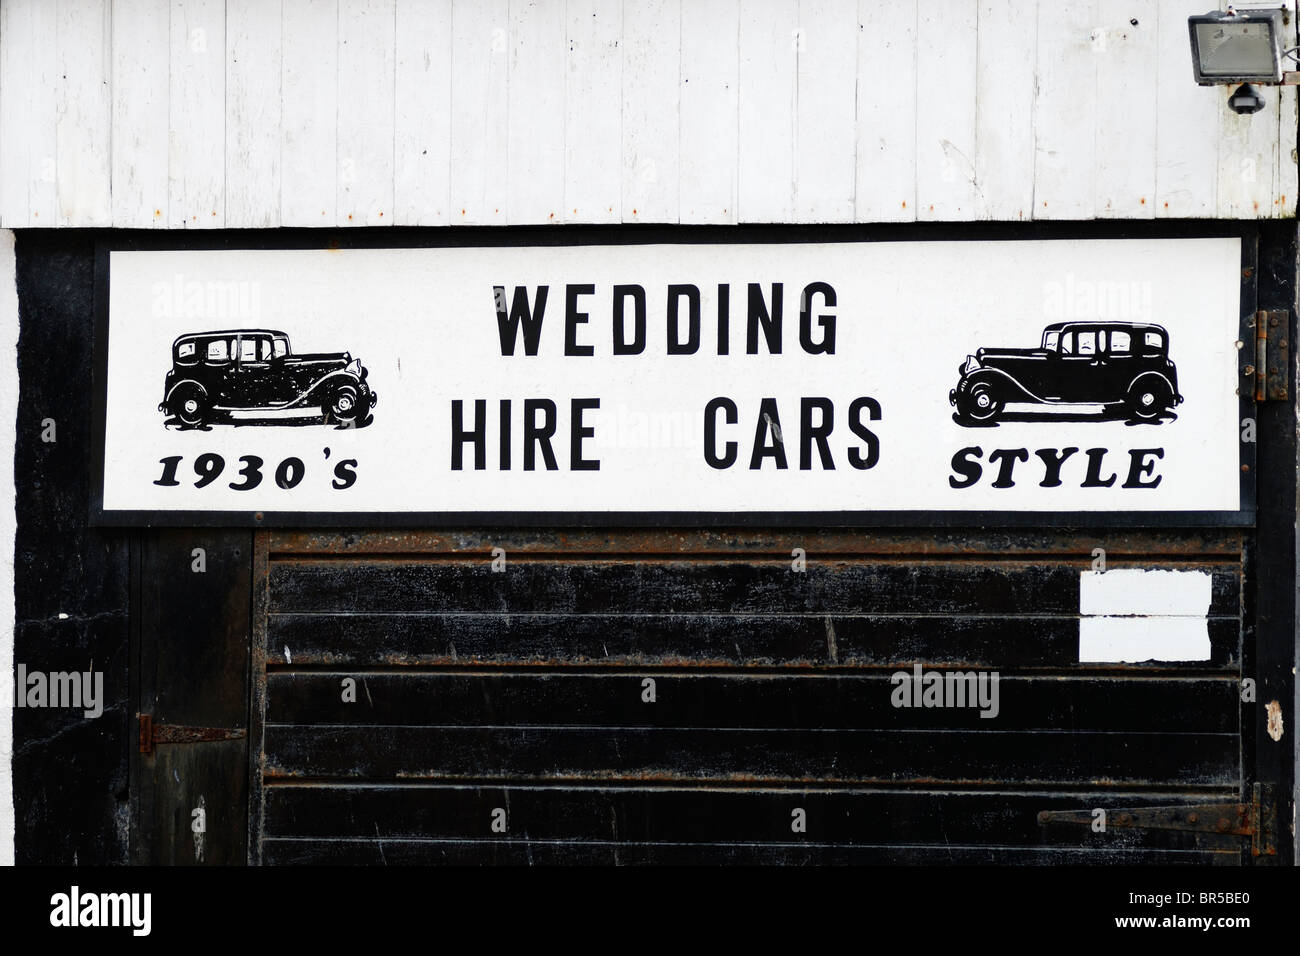 Sign advertising the hire of 1930's style wedding cars, Aberystwyth, Wales. - Stock Image